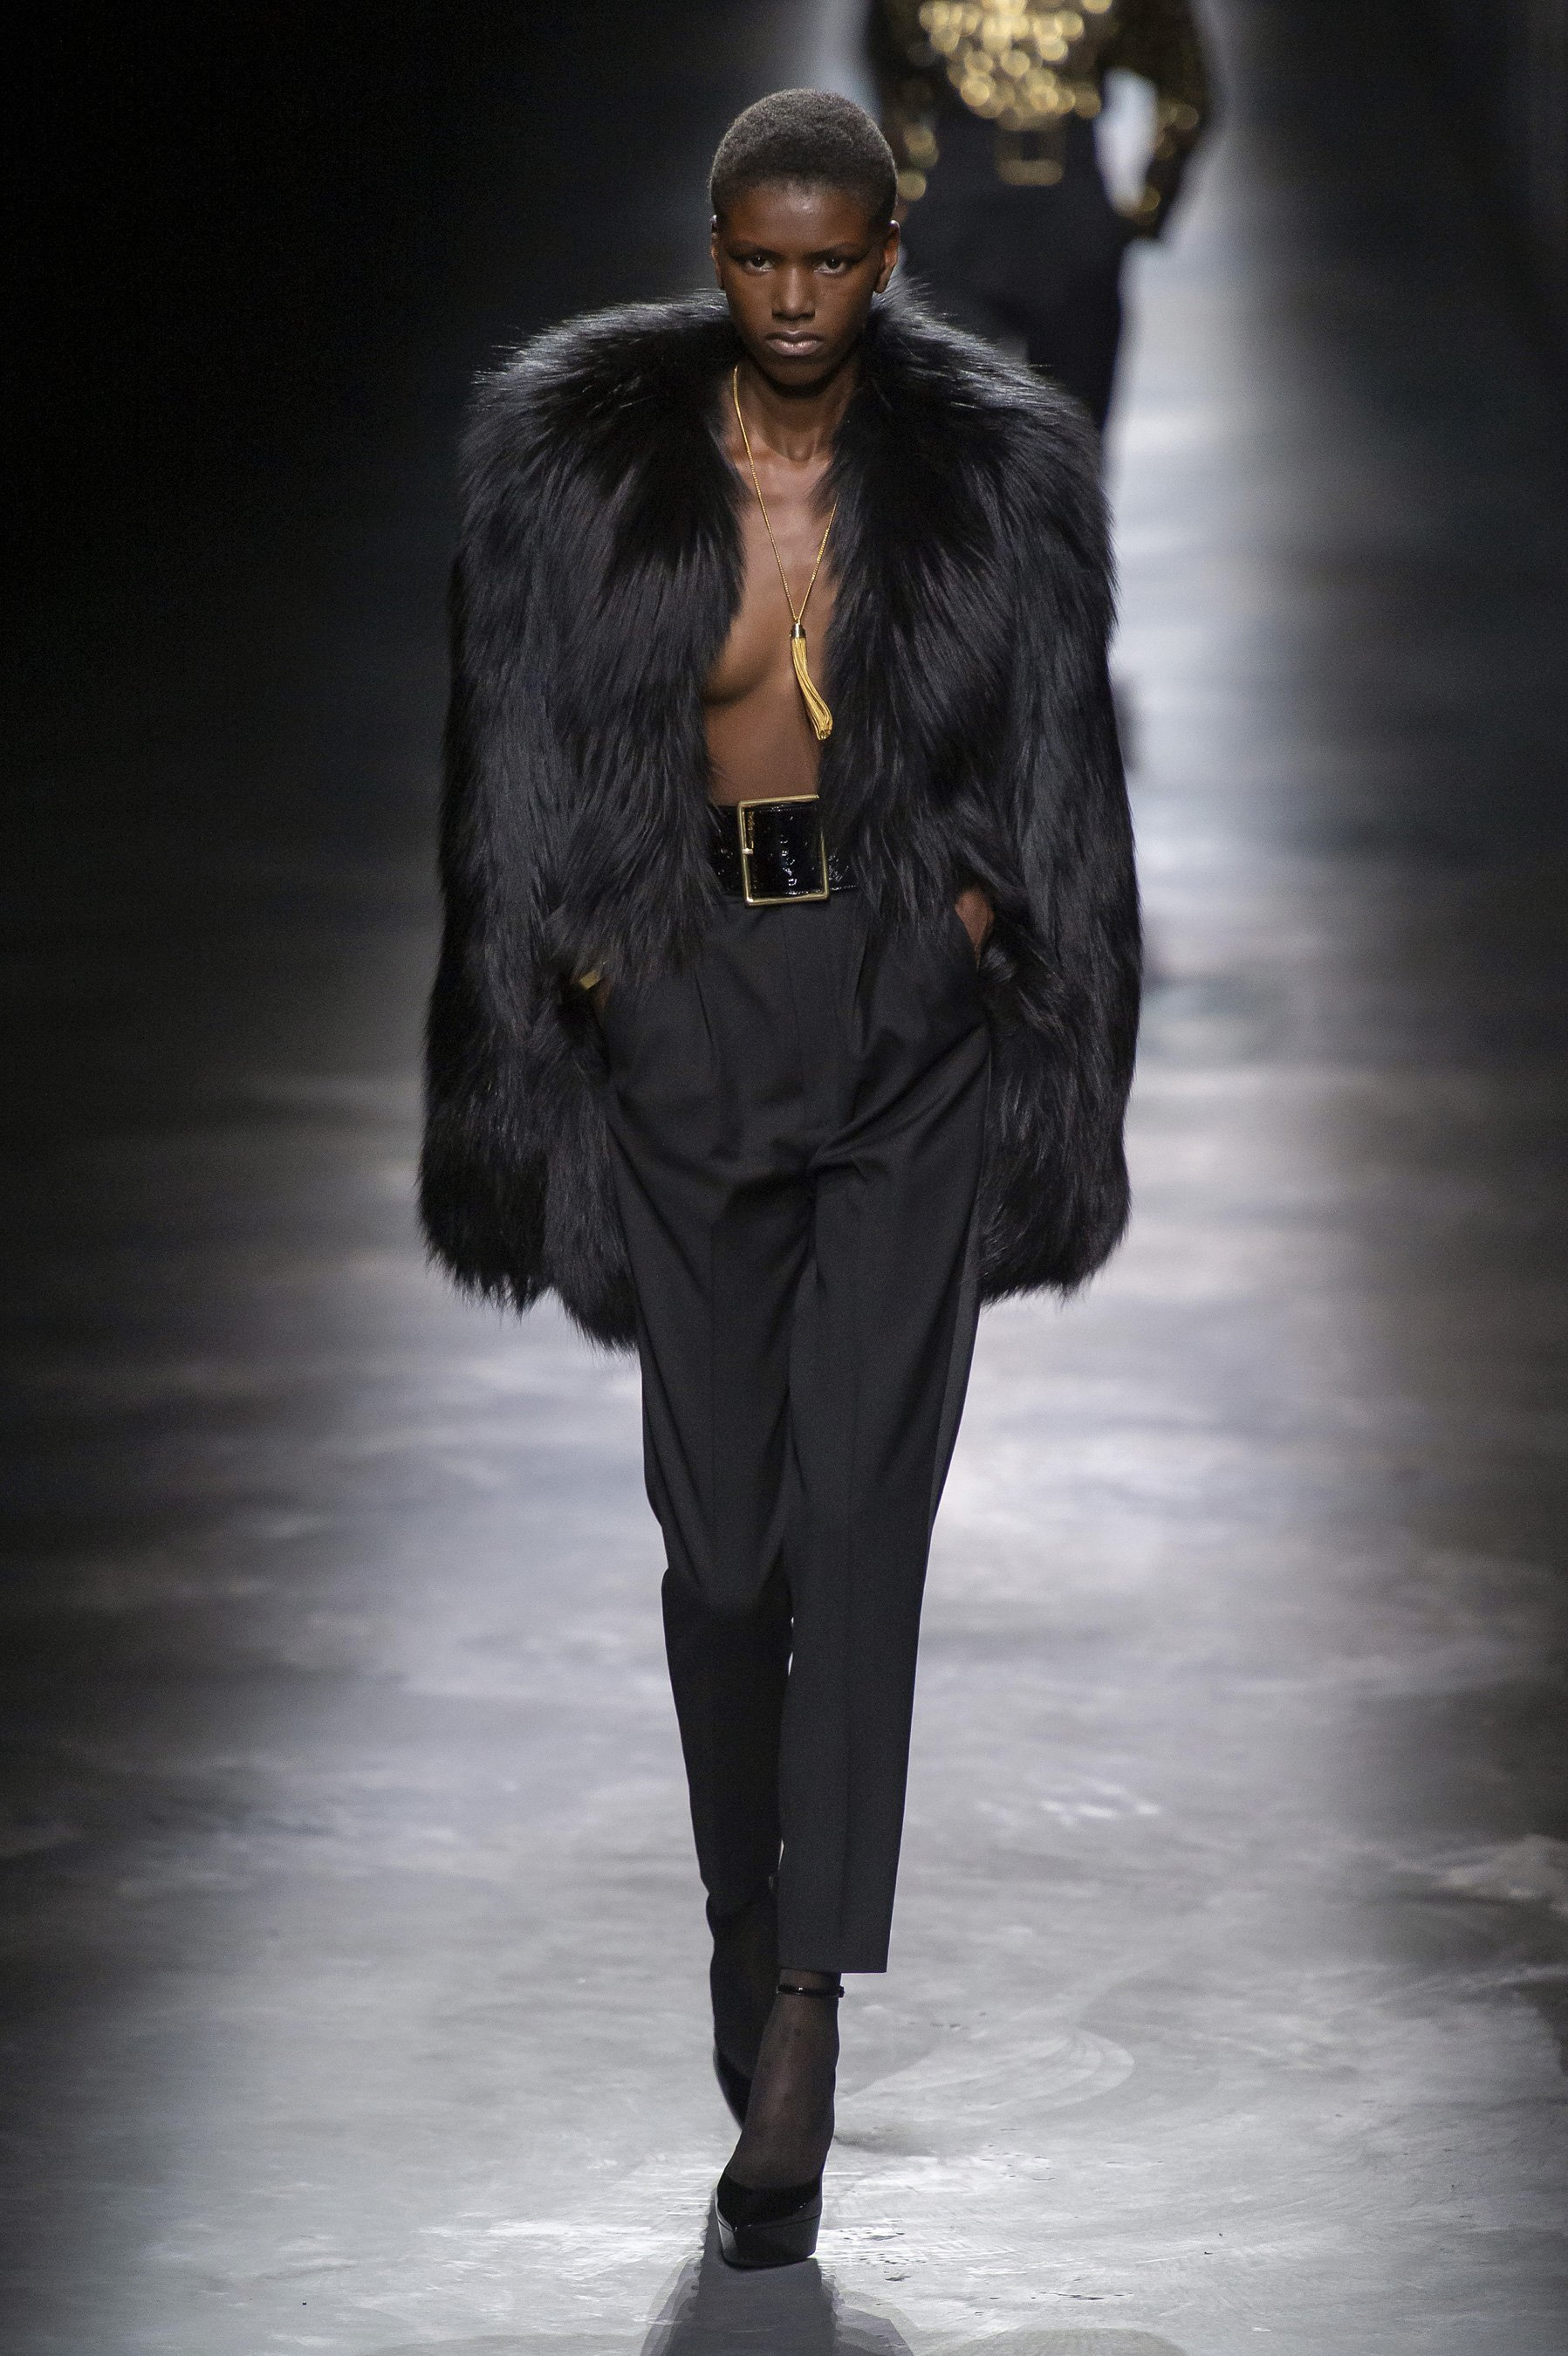 defile-saint-laurent-automne-hiver-2019-2020-paris-look-36.jpg